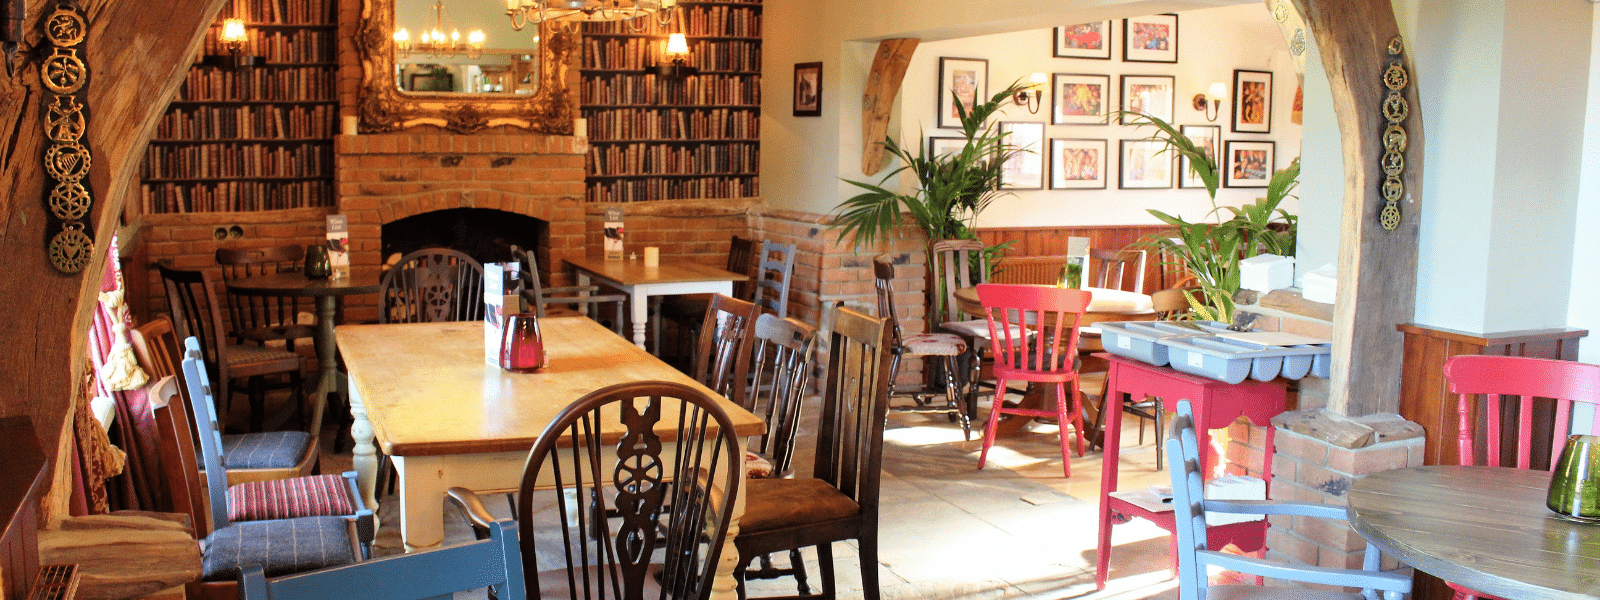 Events at the Coach and Horses